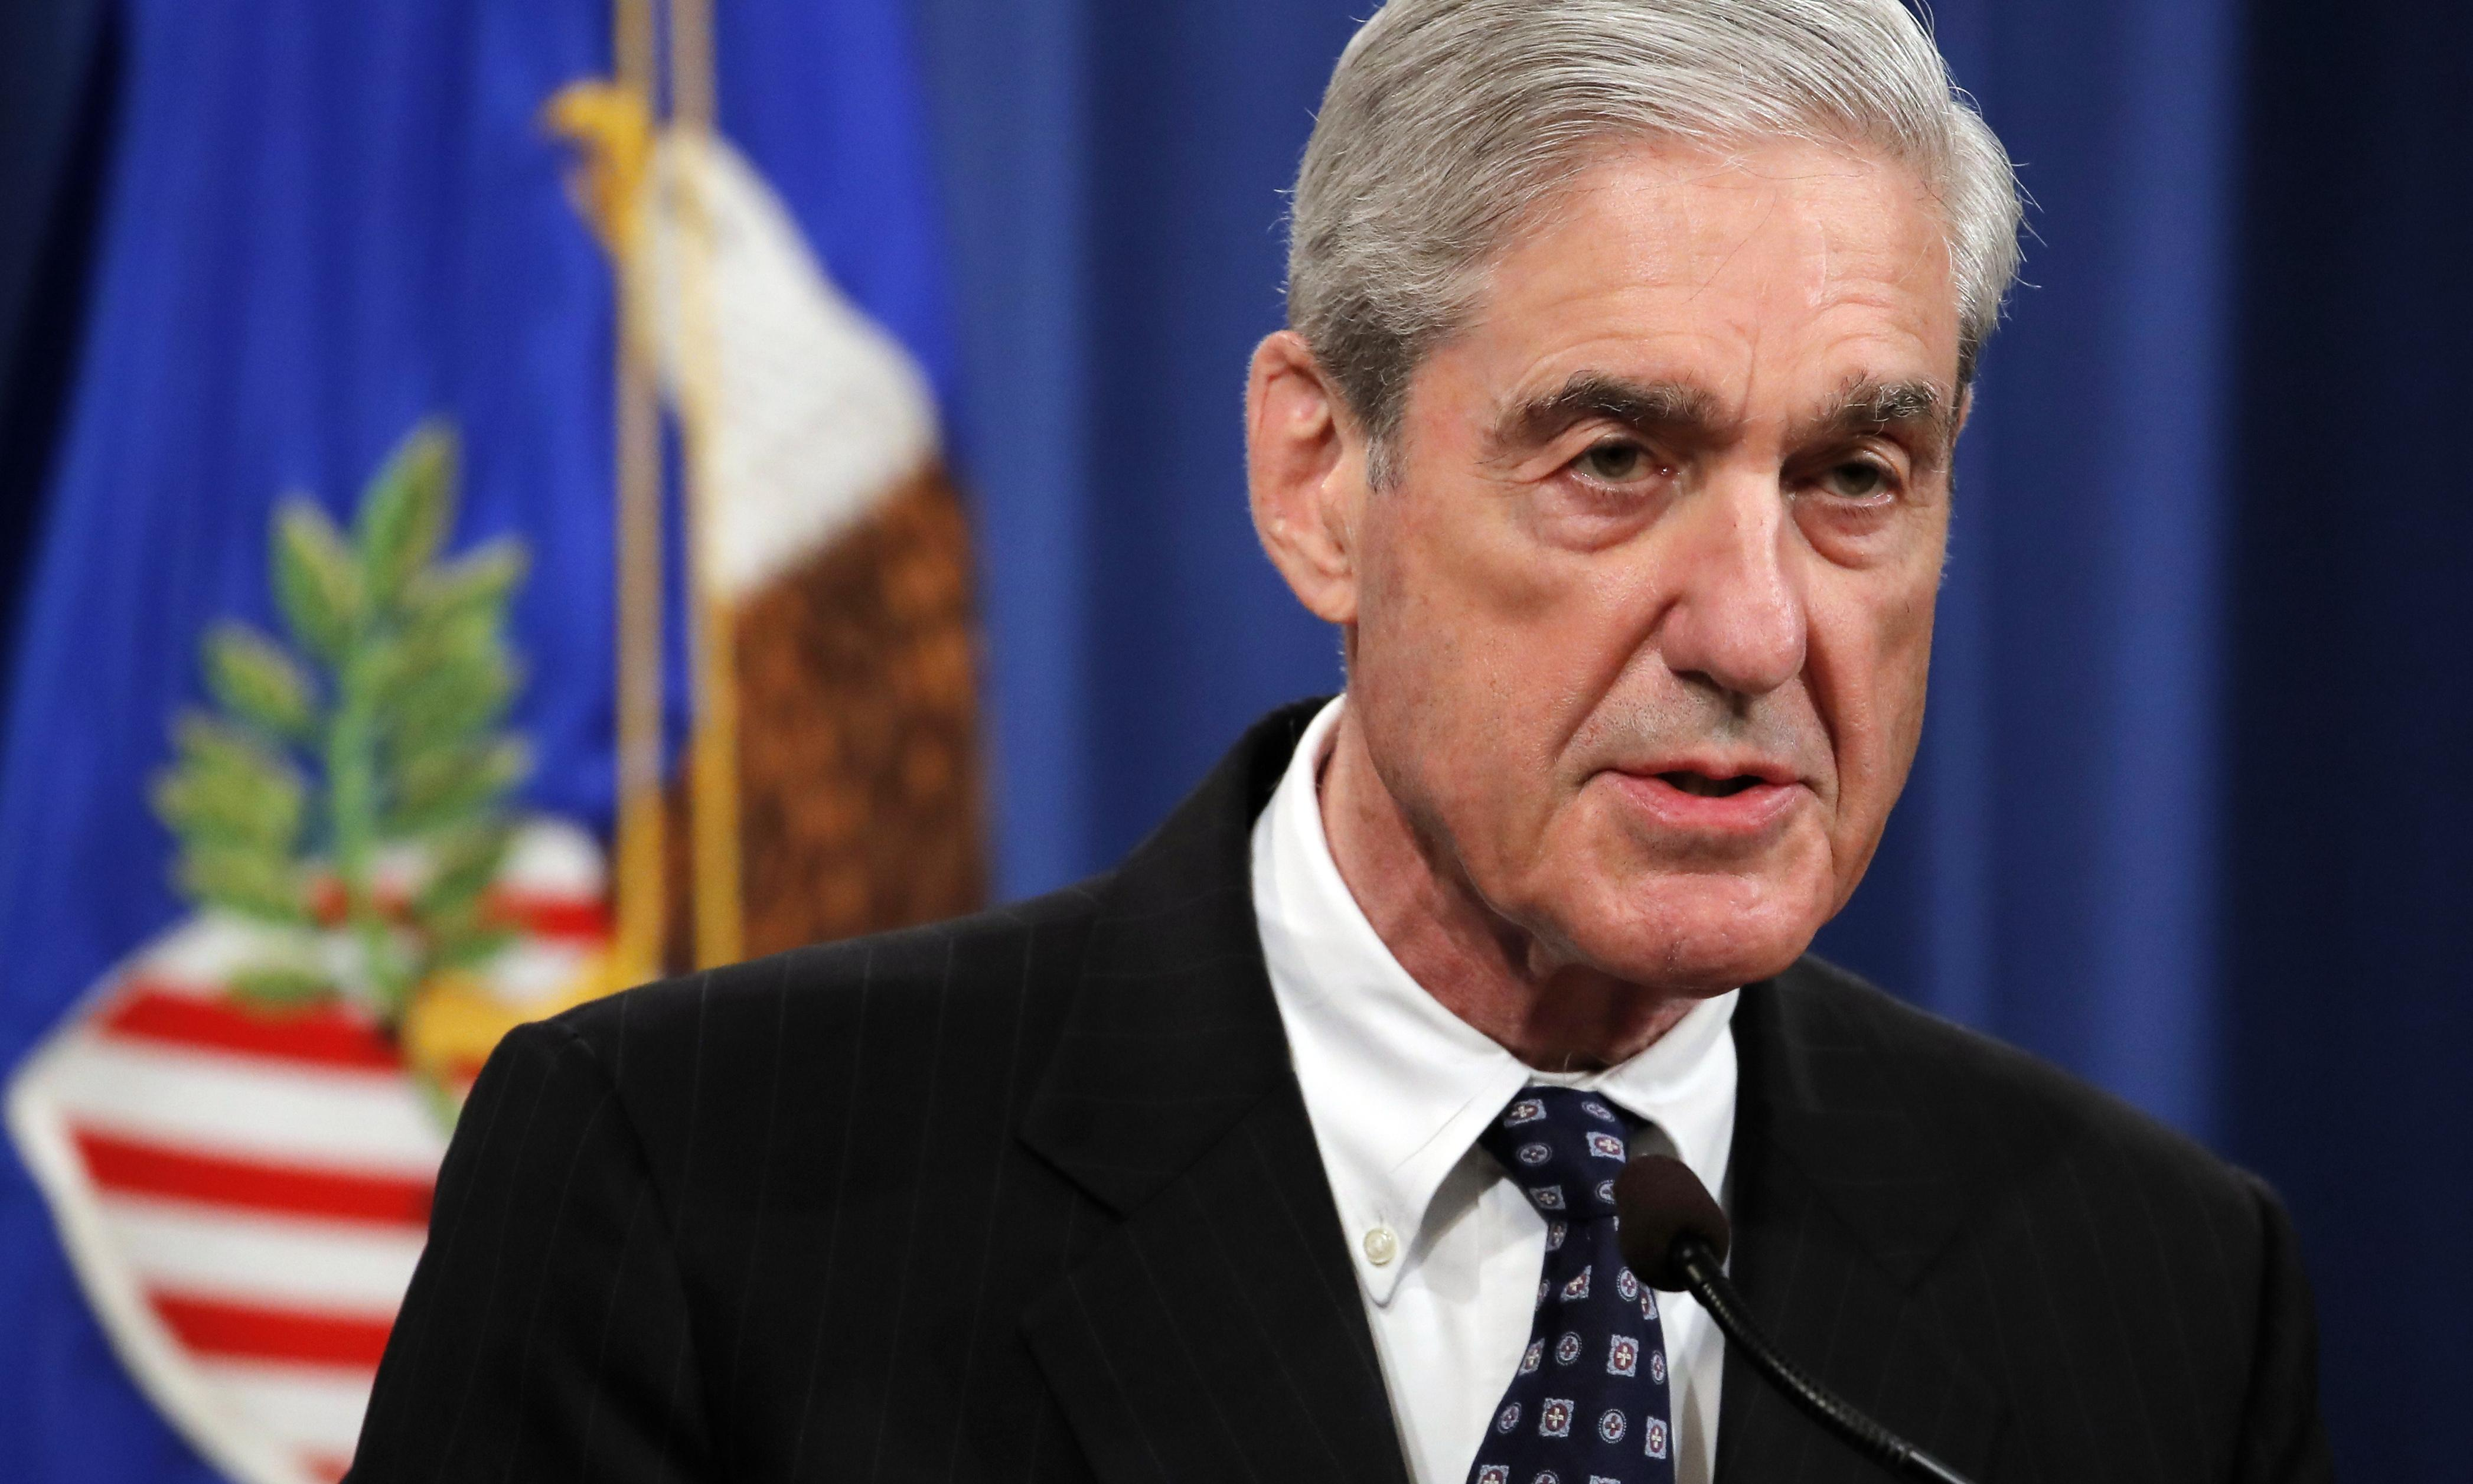 Robert Mueller to testify before Congress in July